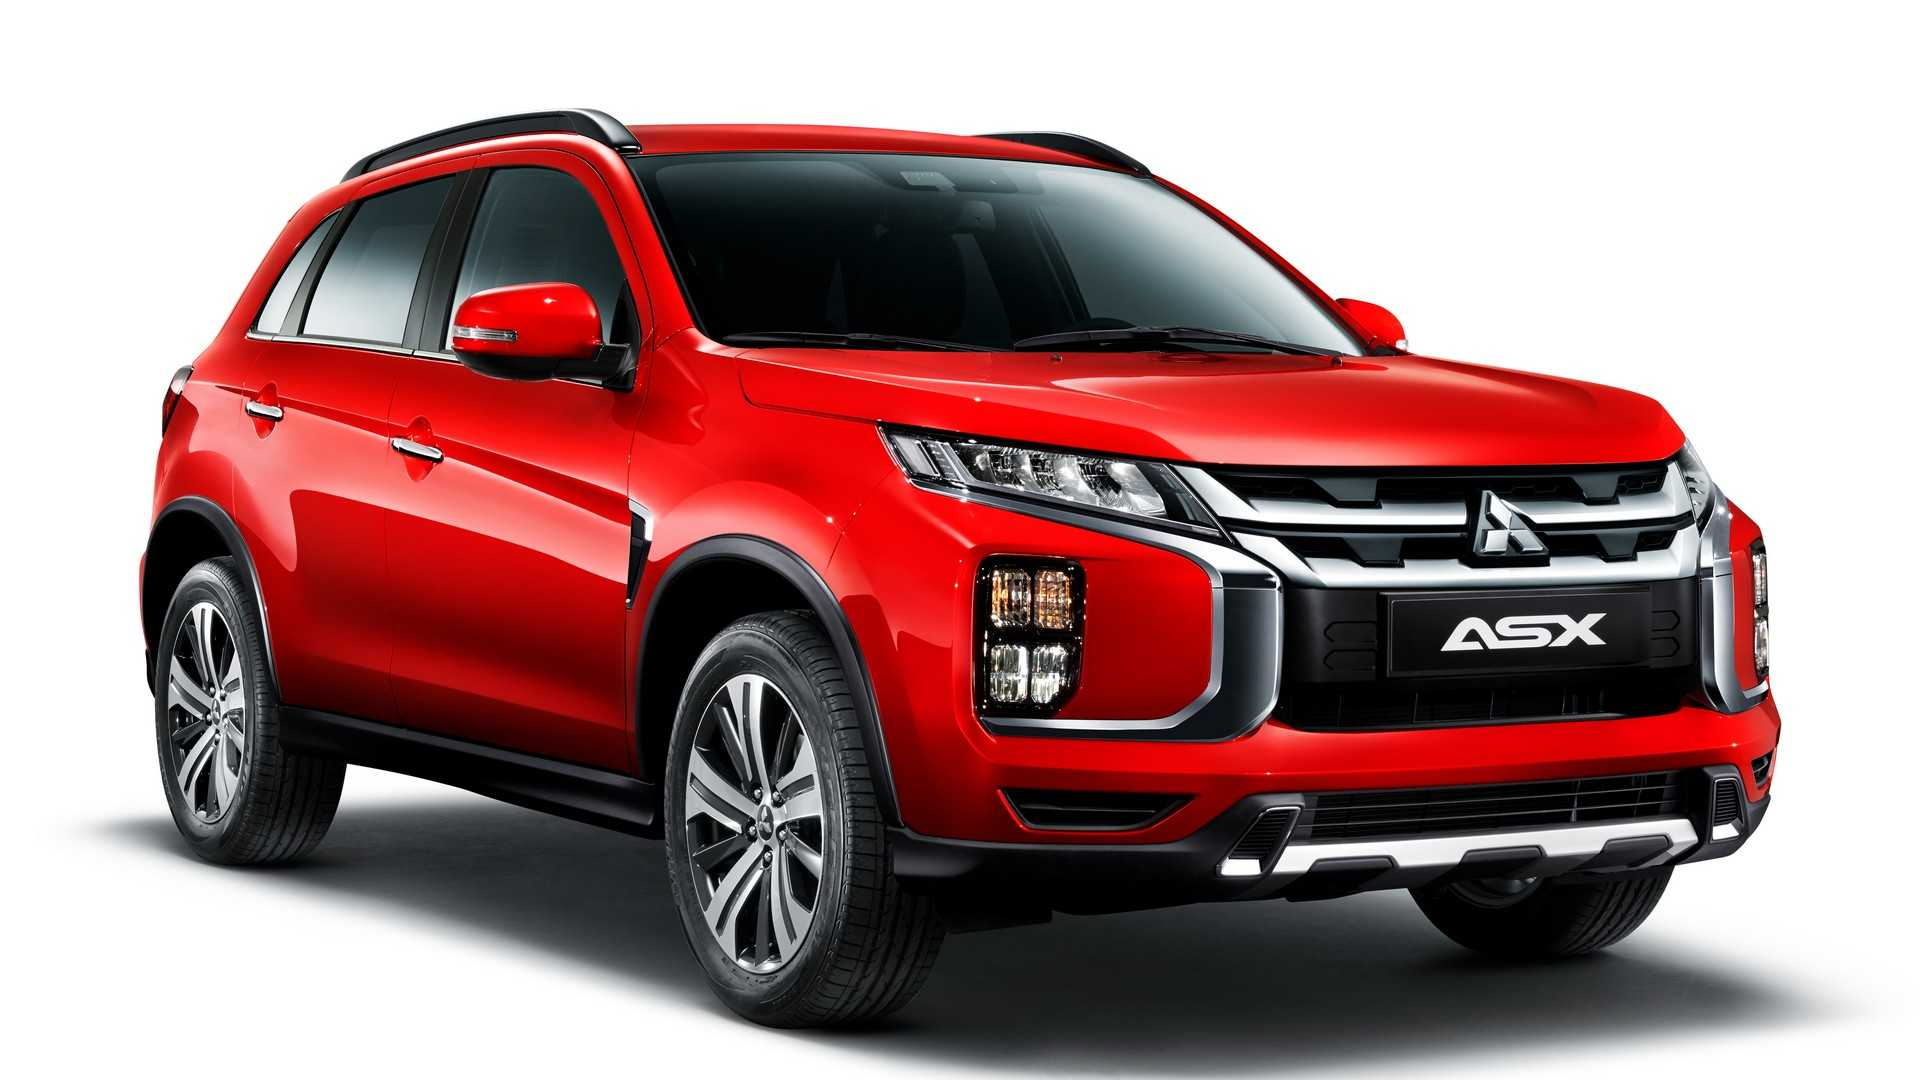 93 Best Mitsubishi Asx 2020 Brasil New Review